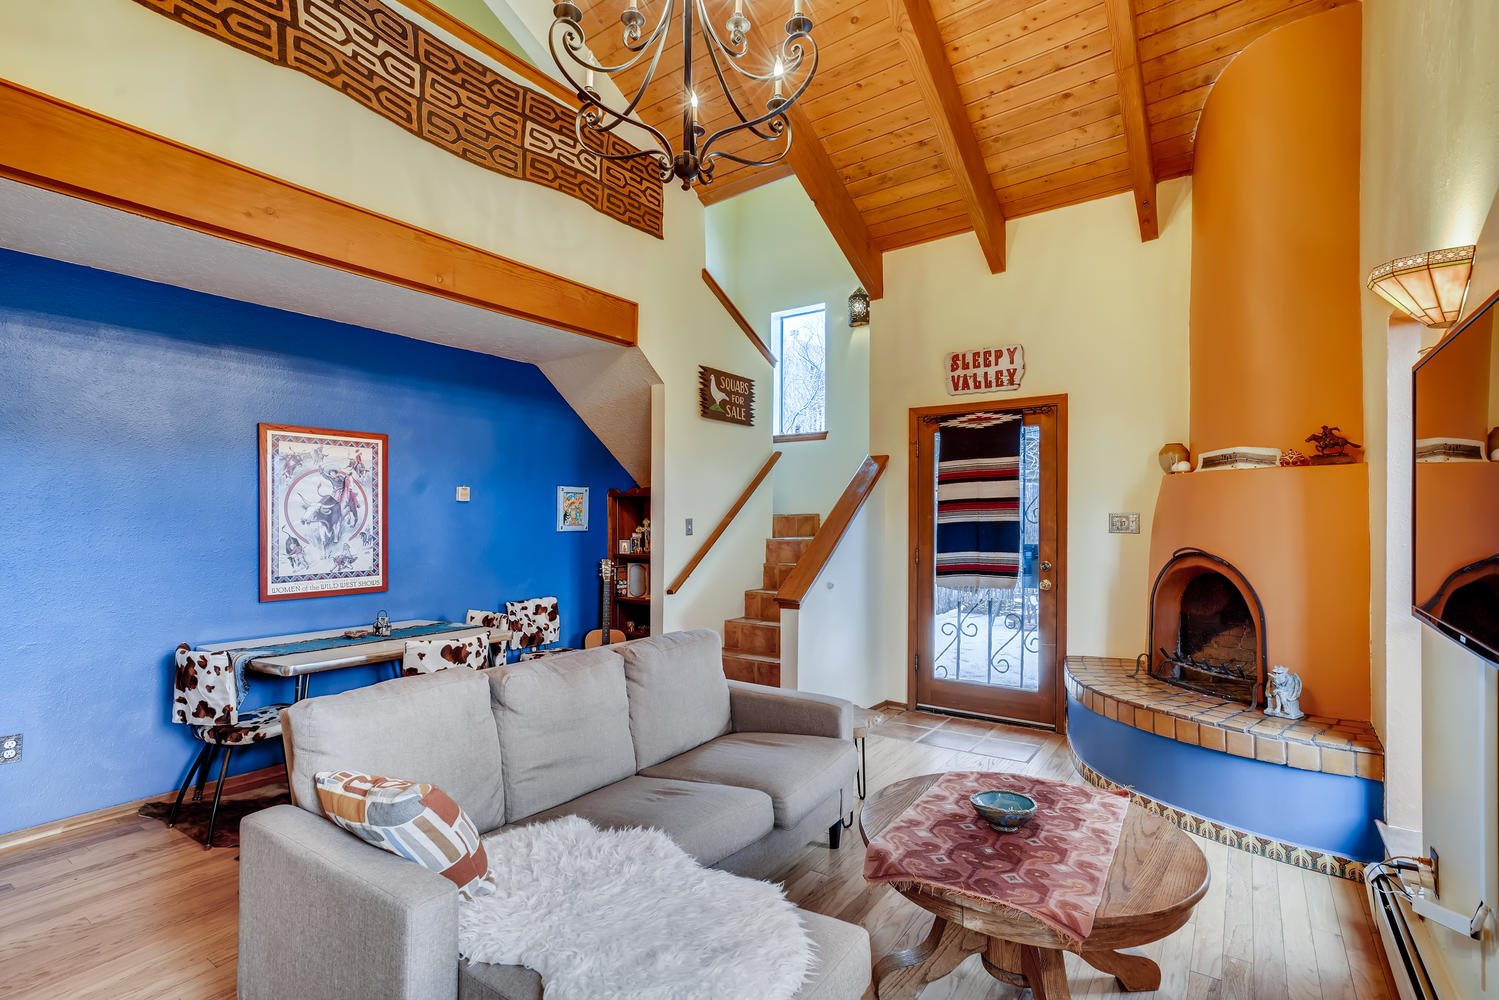 Come fall in love with one of the best values in Santa Fe!  This end unit townhouse is chock full of features that typically come with a much higher price tag attached.  Mountain views, kiva fireplace, clean stainless steel kitchen appliances, saltillo tile and wood floors, fantastic separation of bedrooms, ample storage spaces and many tasteful custom features adorn the interior of this 2 bed, 2 bath home. A private balcony off the master suite and the beautifully appointed master bath grant a humble elegance to the upstairs master suite. Outside, the yard space is home to productive apple and apricot trees, and a running water feature to keep life beautiful and serene.  This could be a great home and/or a fantastic investment, schedule your showing today!